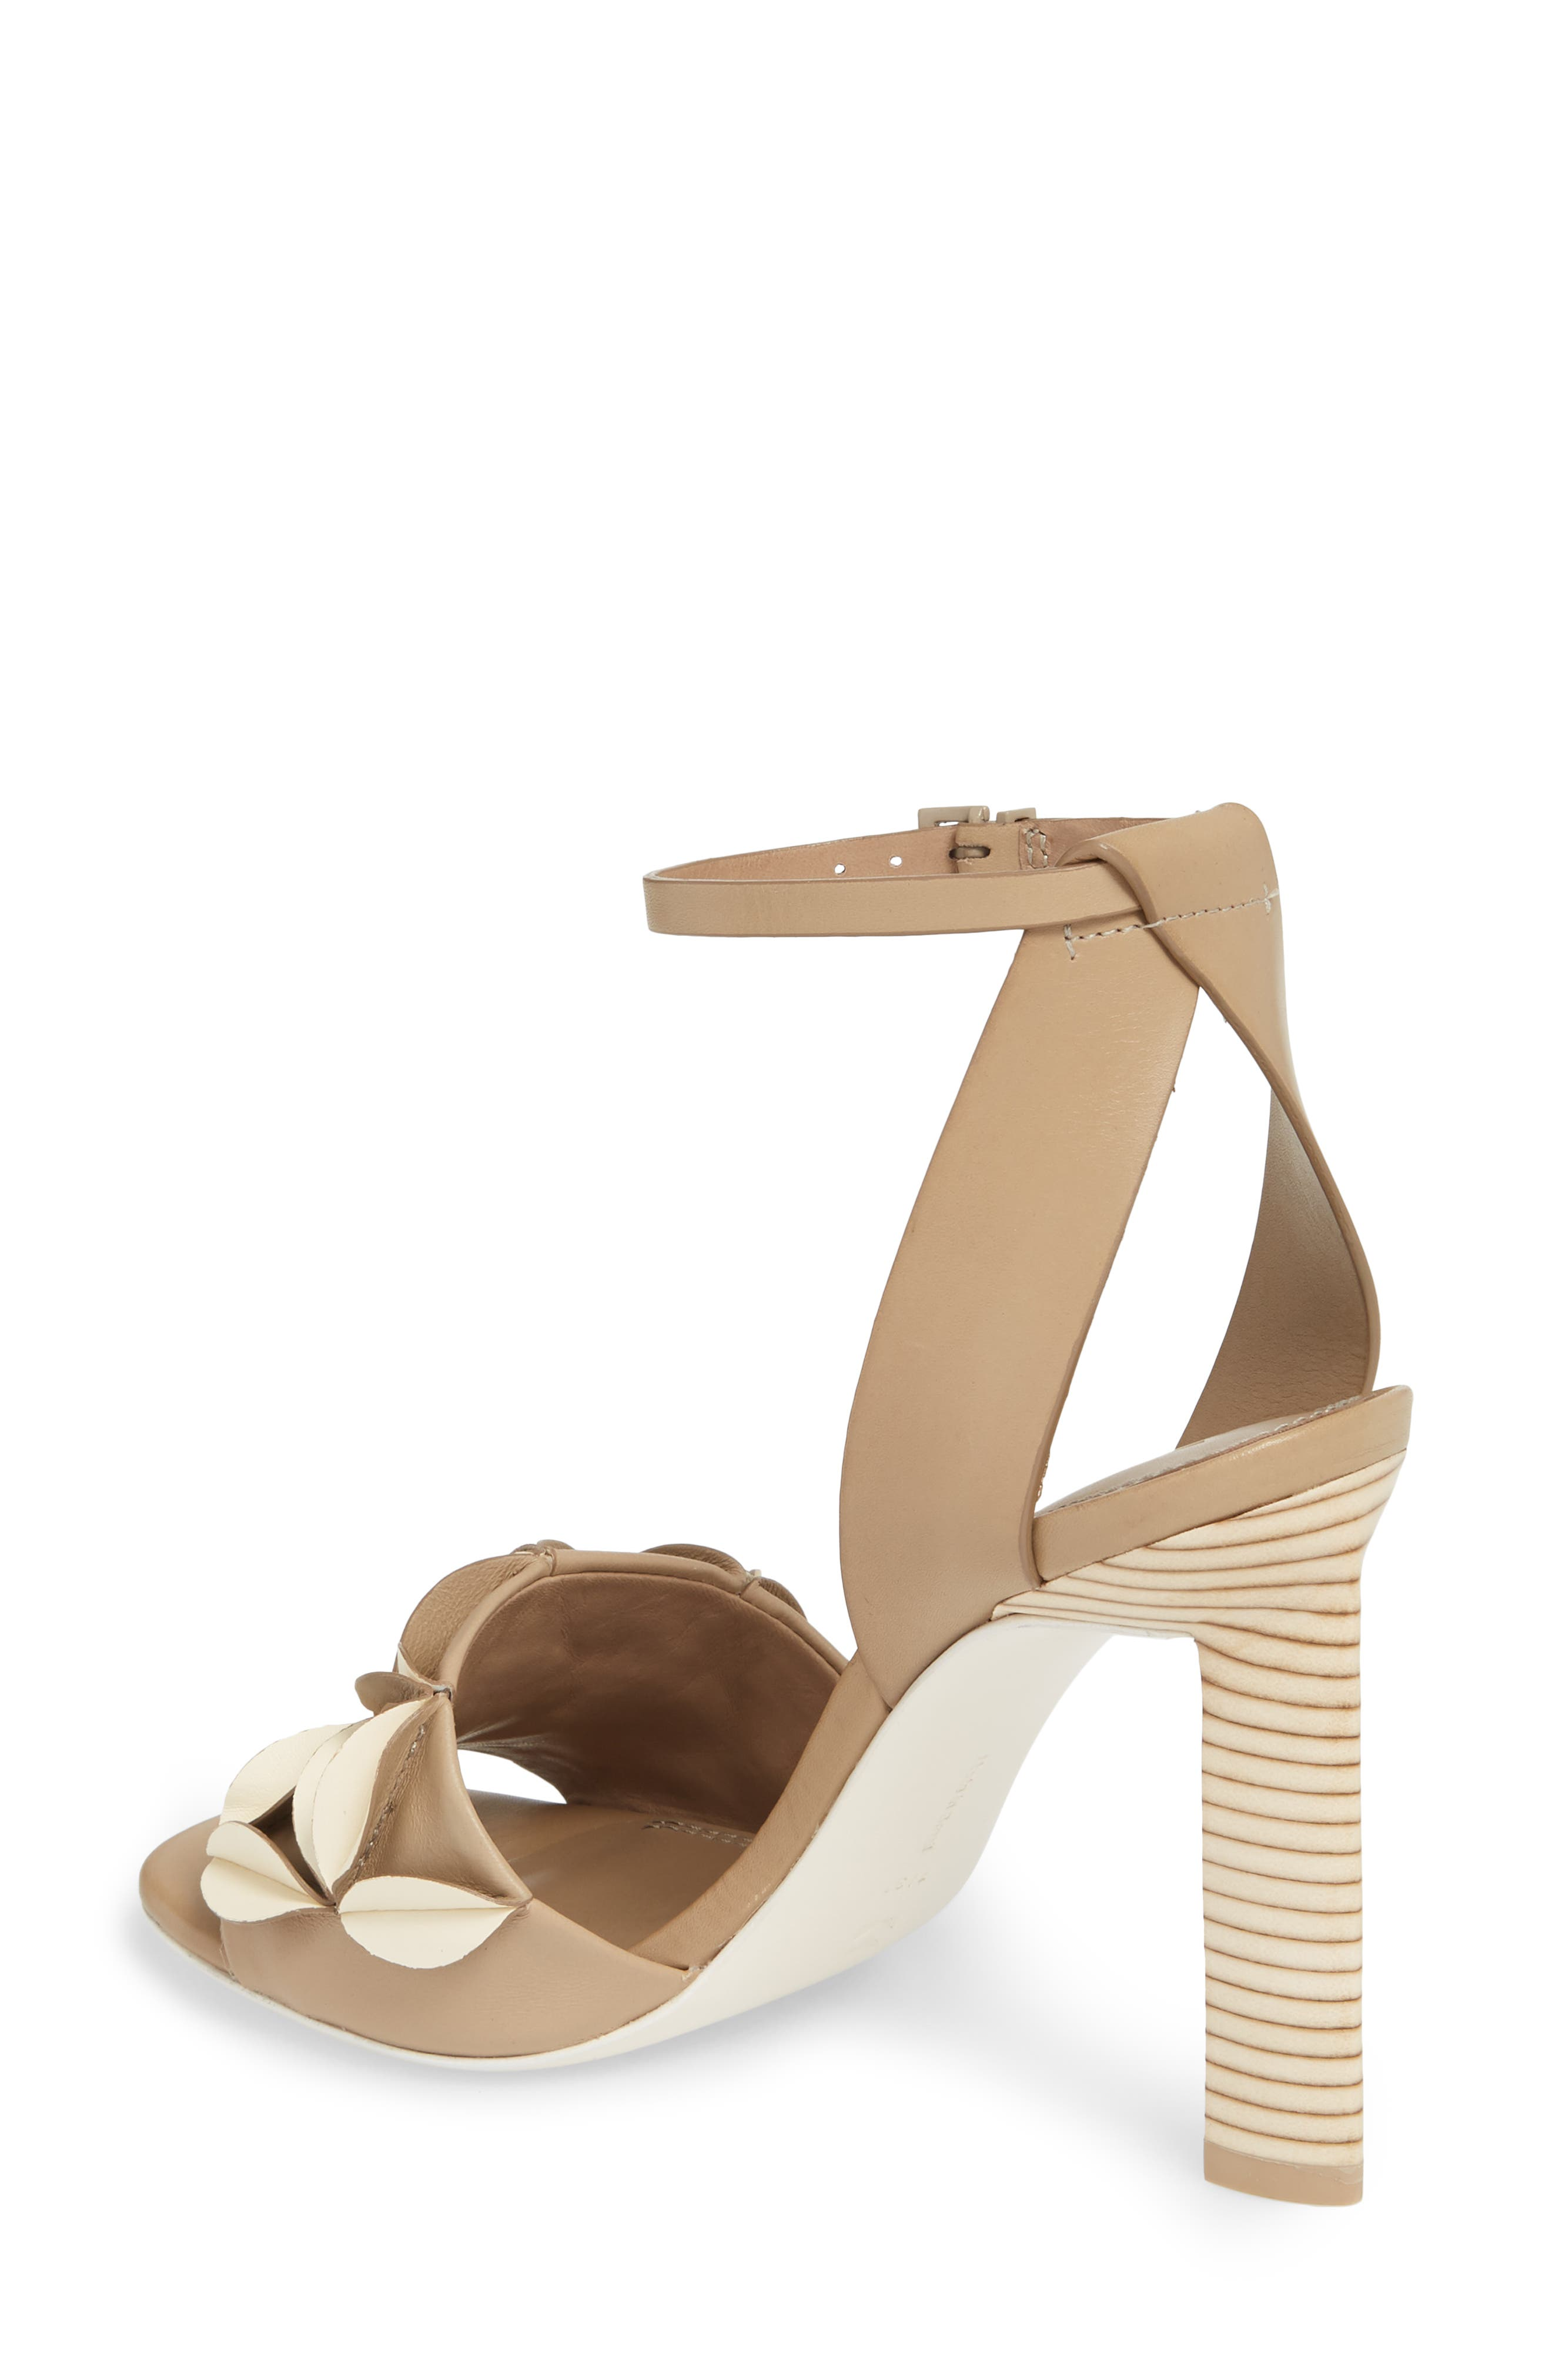 Milee Ankle Strap Sandal,                             Alternate thumbnail 3, color,